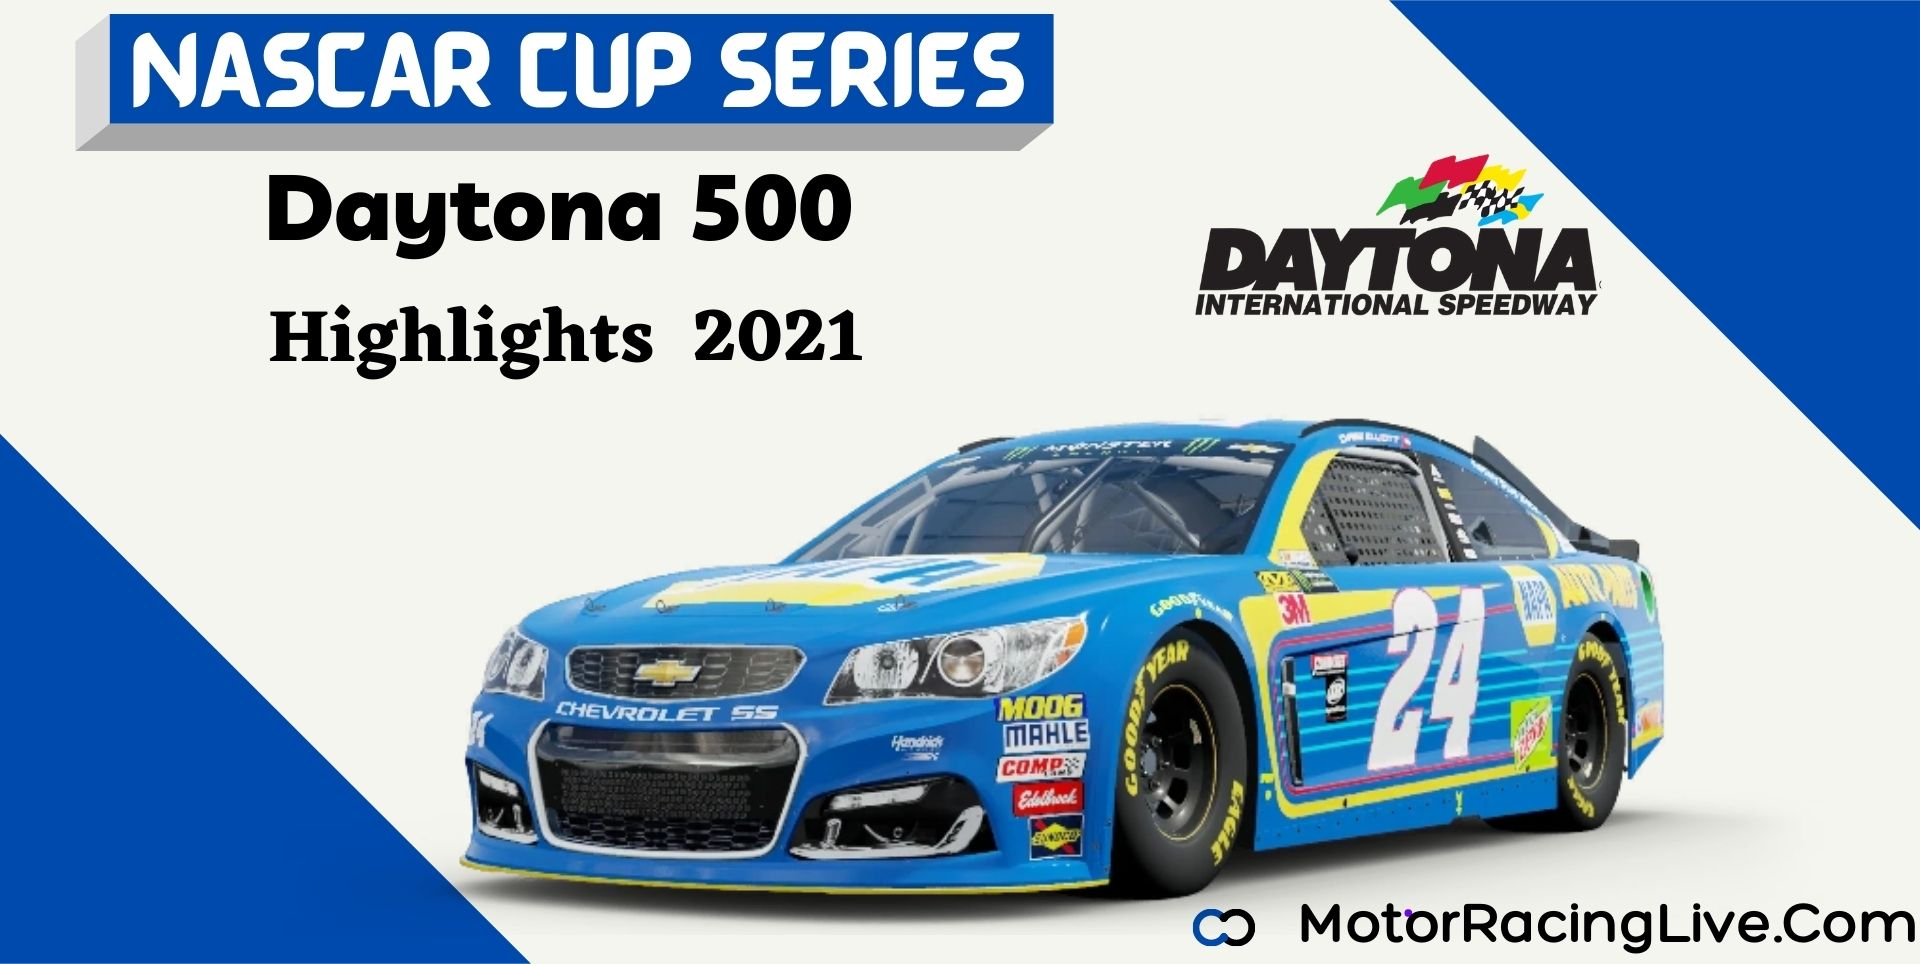 Daytona 500 Highlights 2021 NASCAR Cup Series